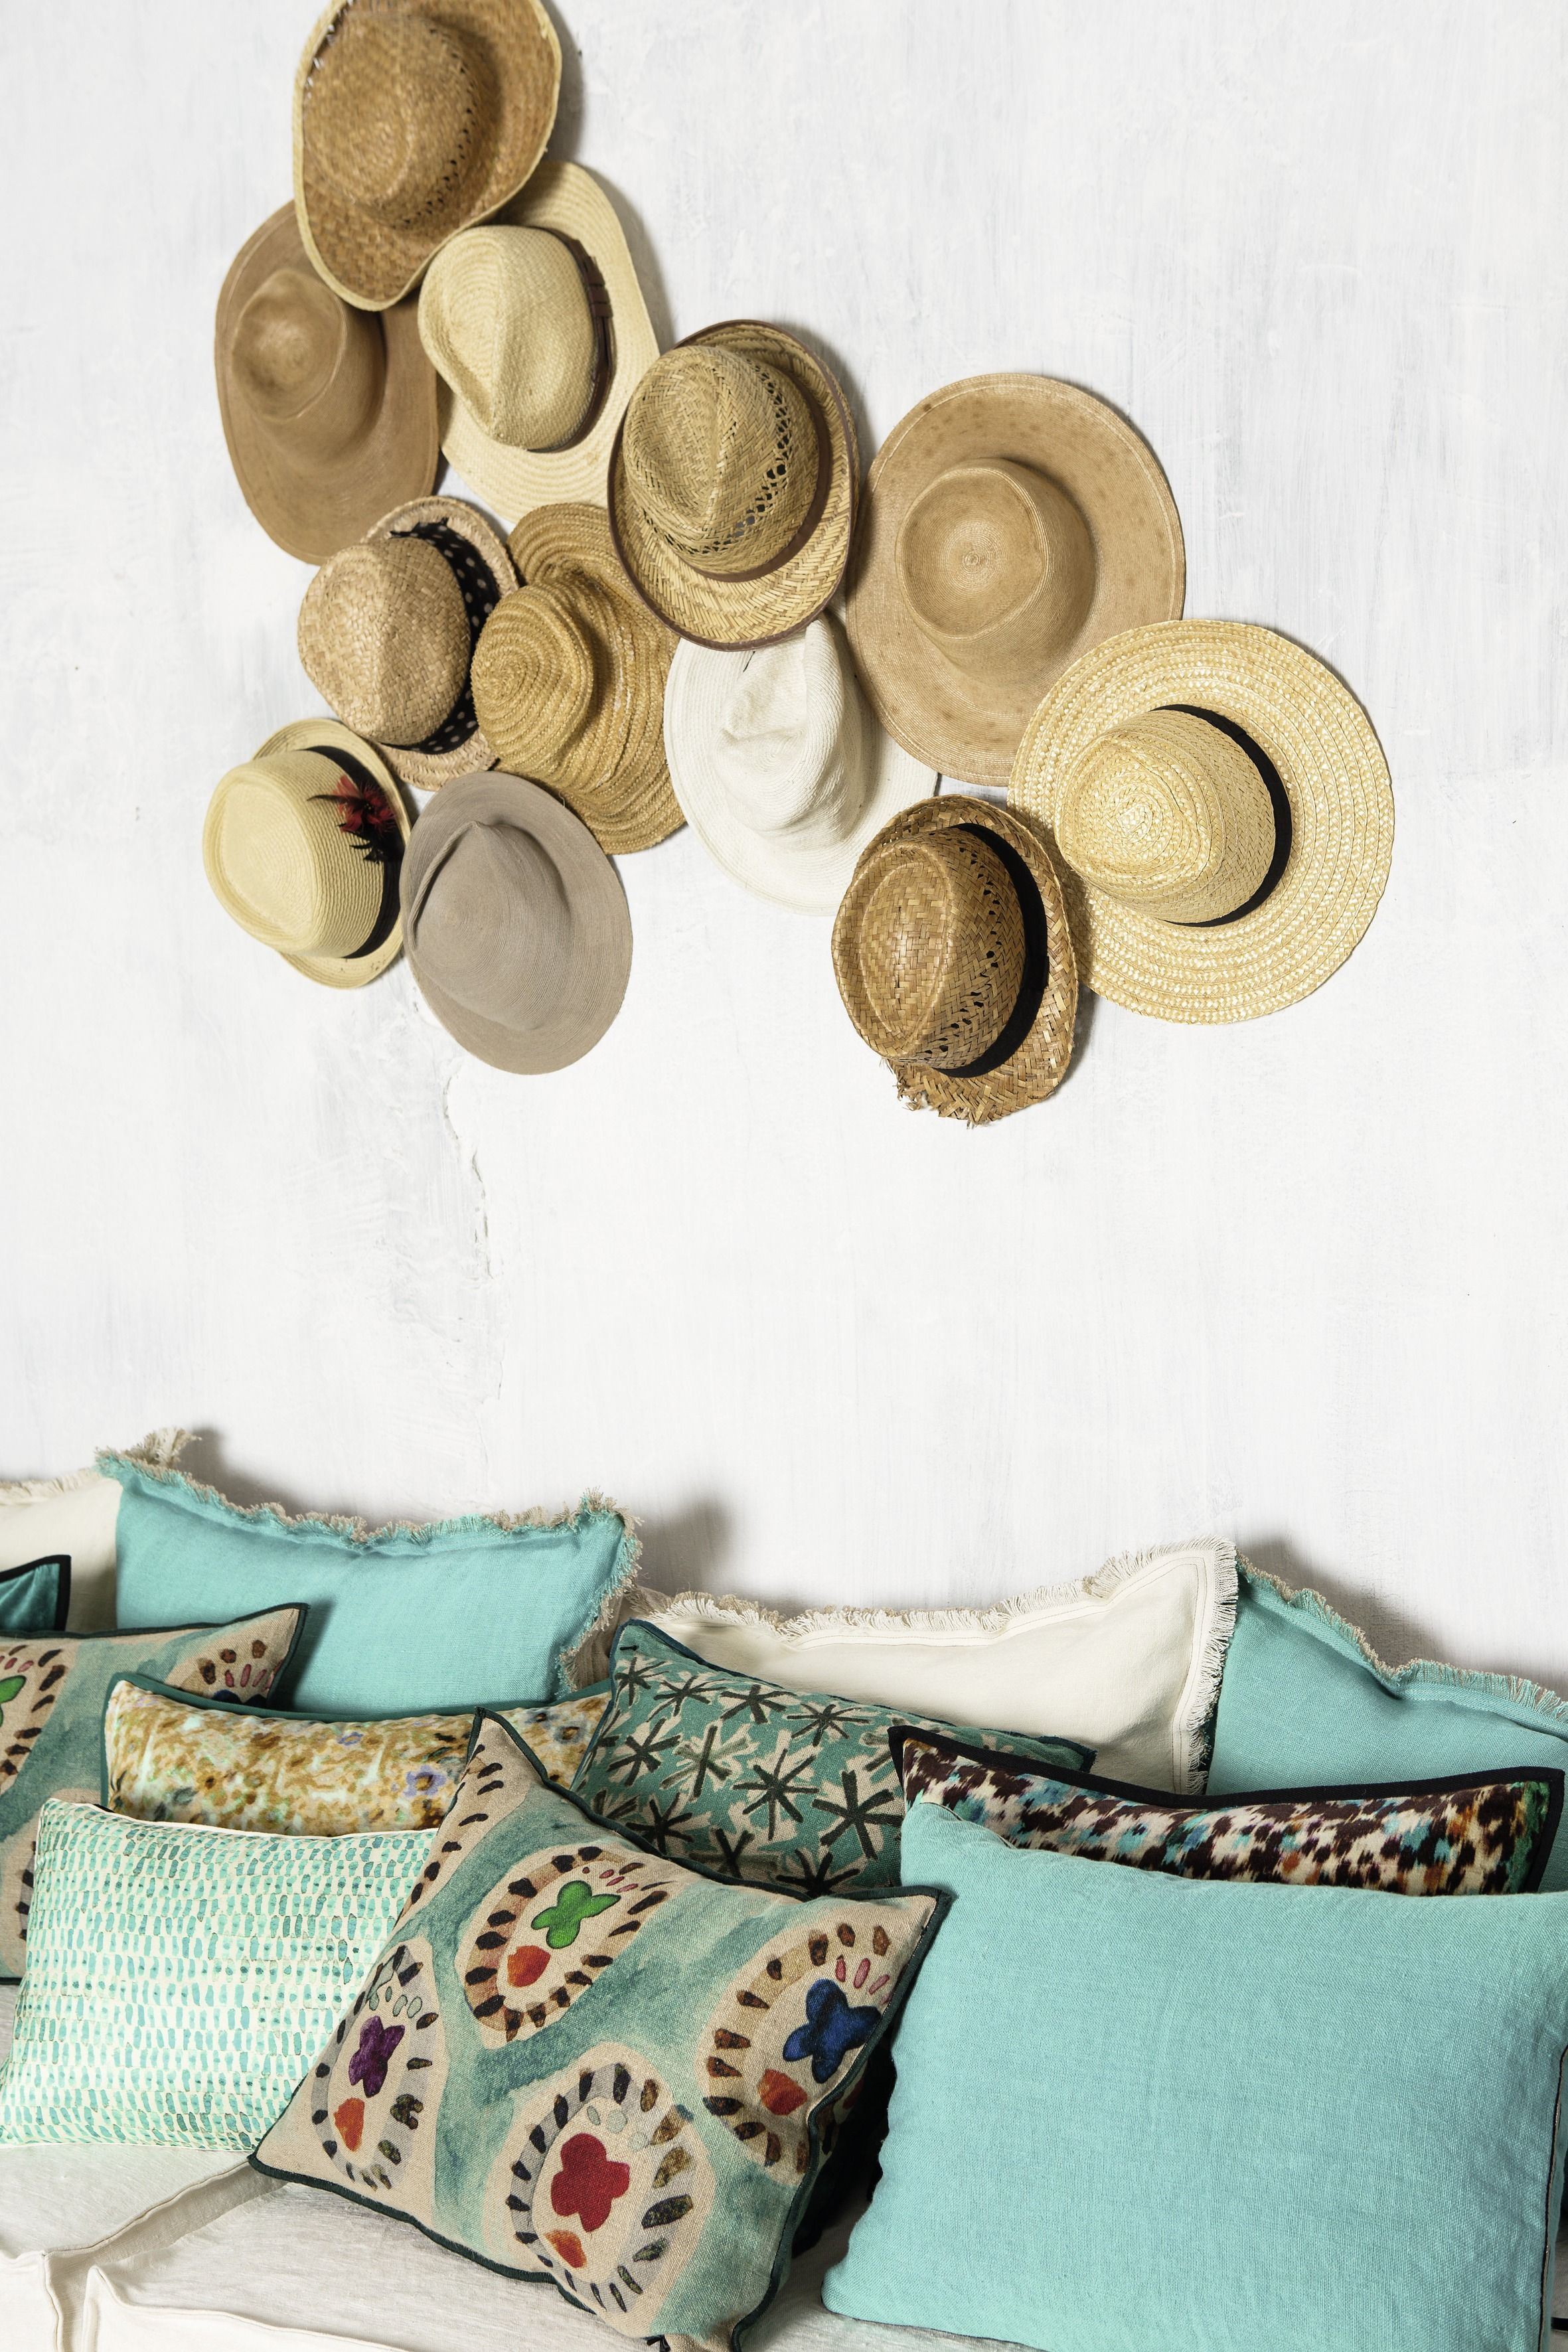 New Collection Of L Accessoire Printed Stonewashed Linen And Silk Cushion Cushions Turquoise Elitis Home Deco Home Decor Inspiration Old Sofa